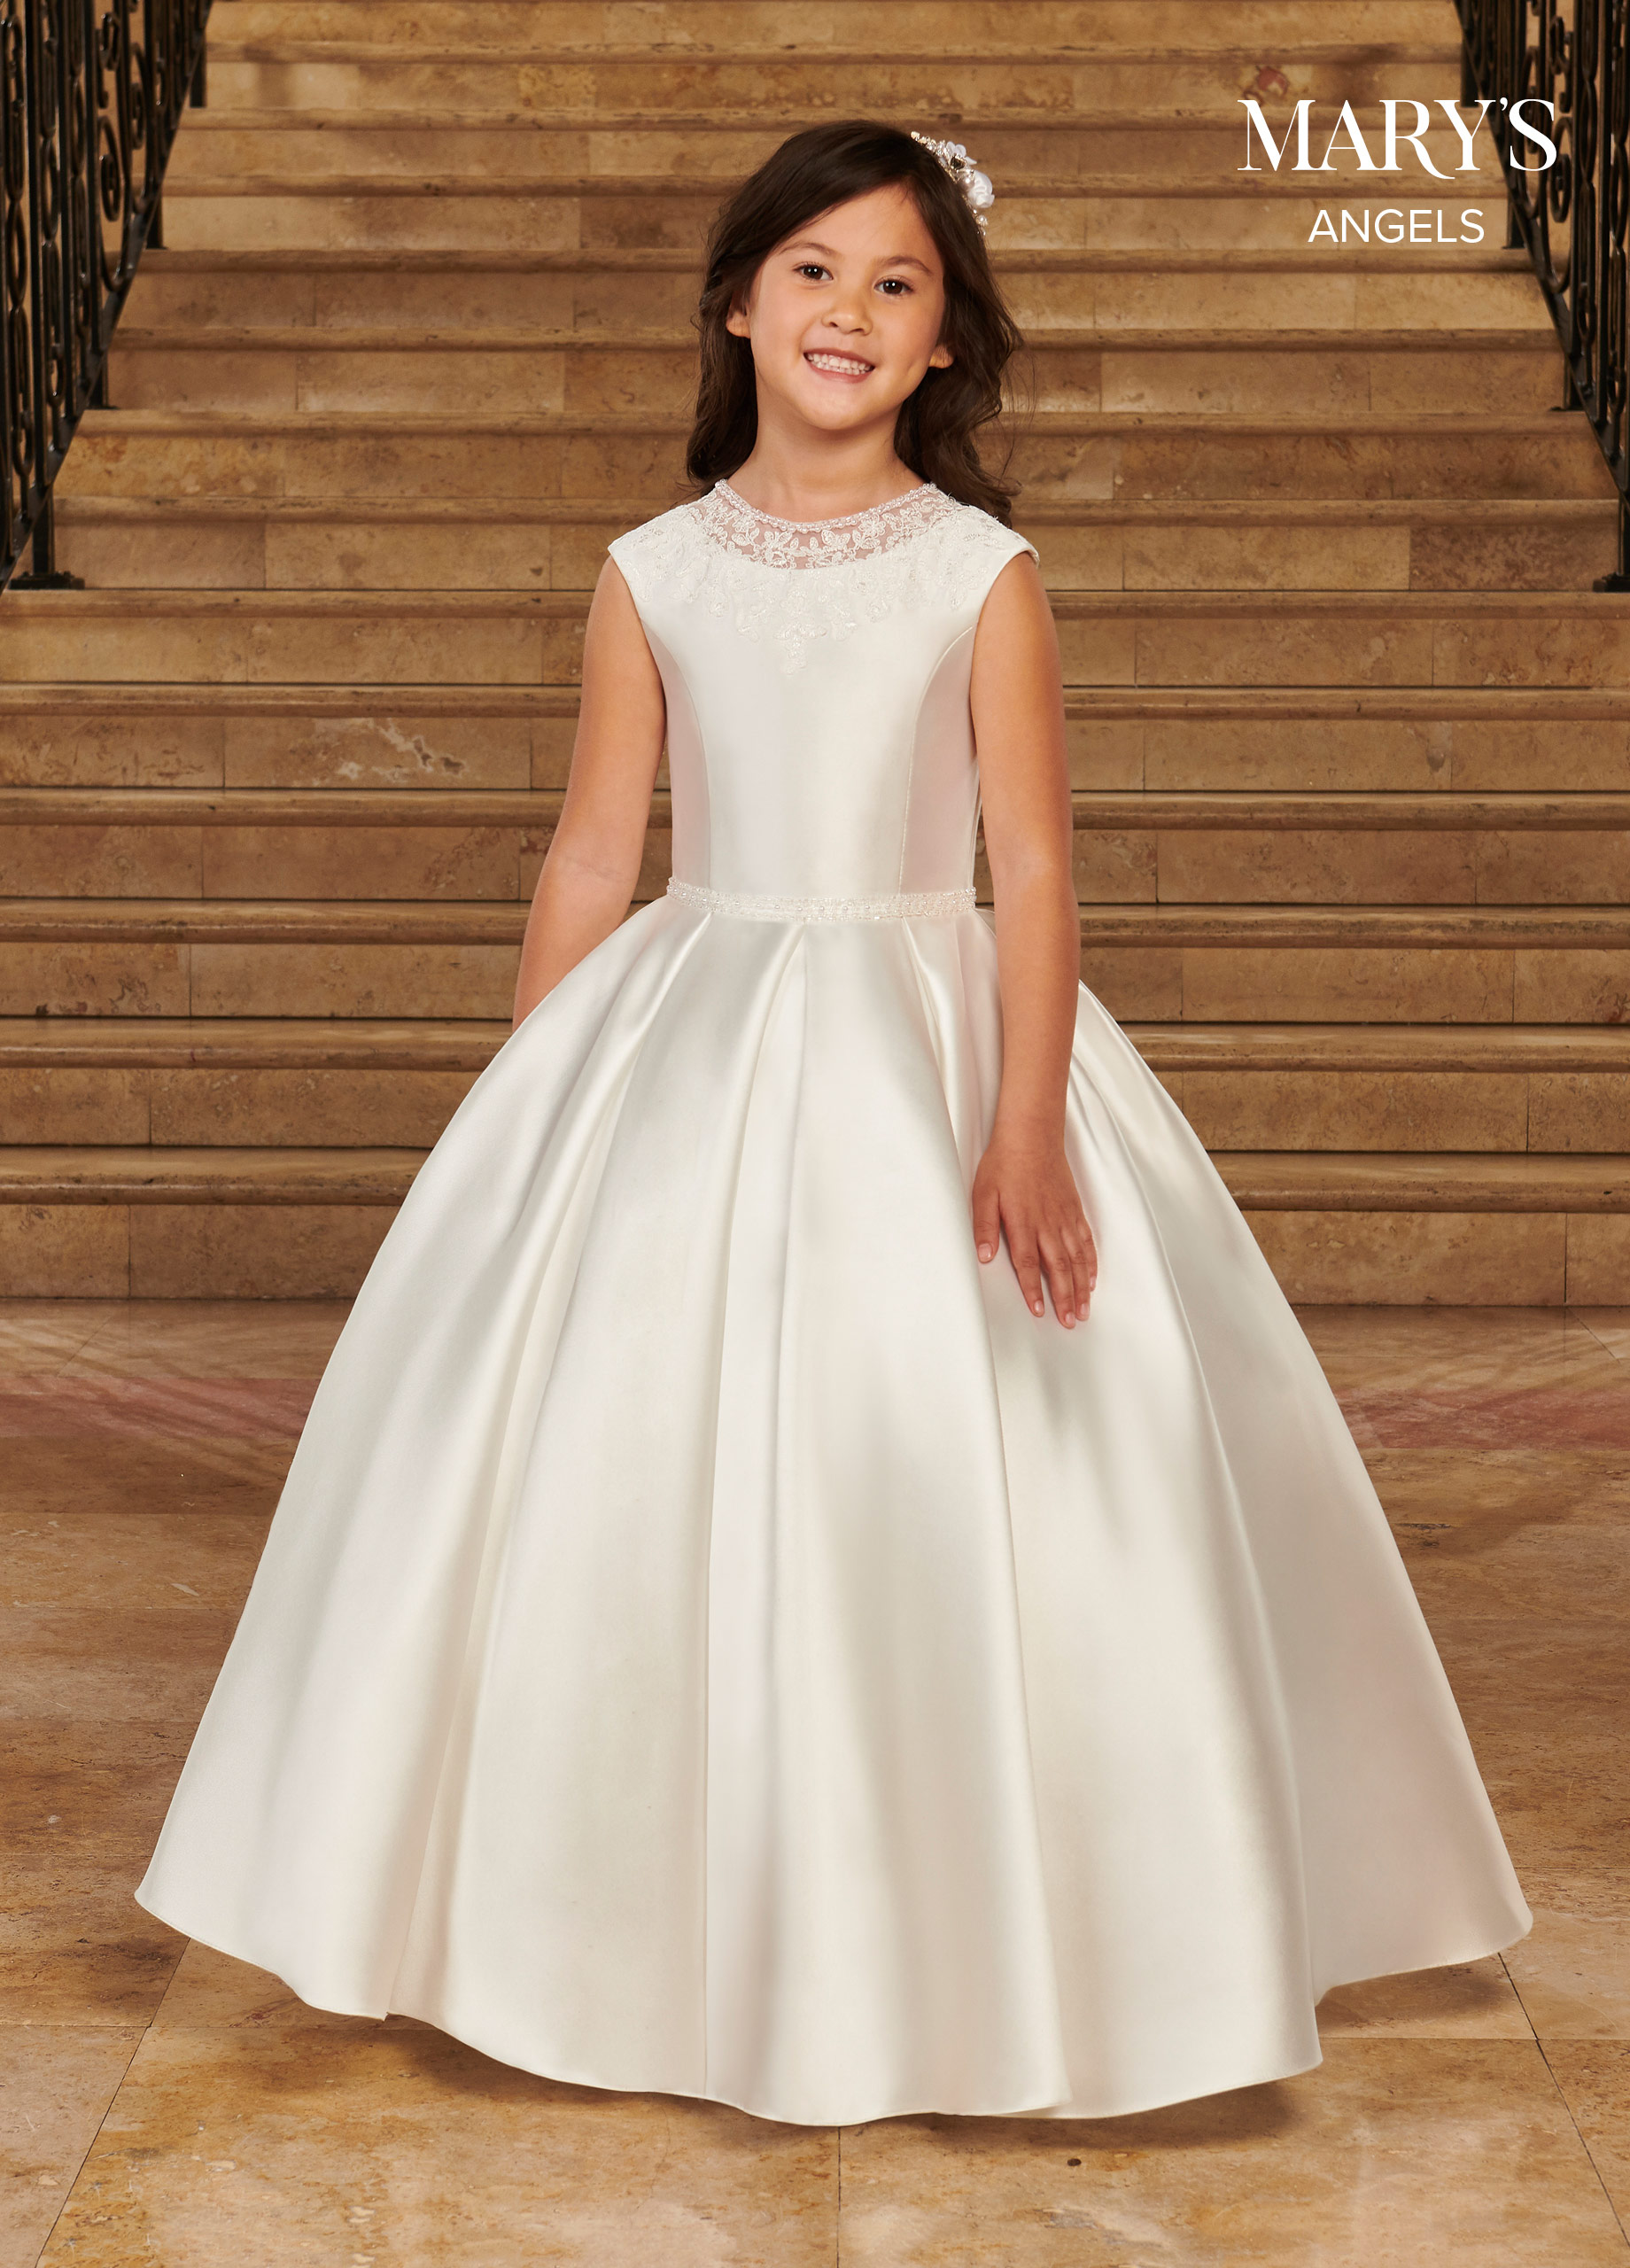 Angel Flower Girl Dresses   Mary's Angels   Style - MB9080